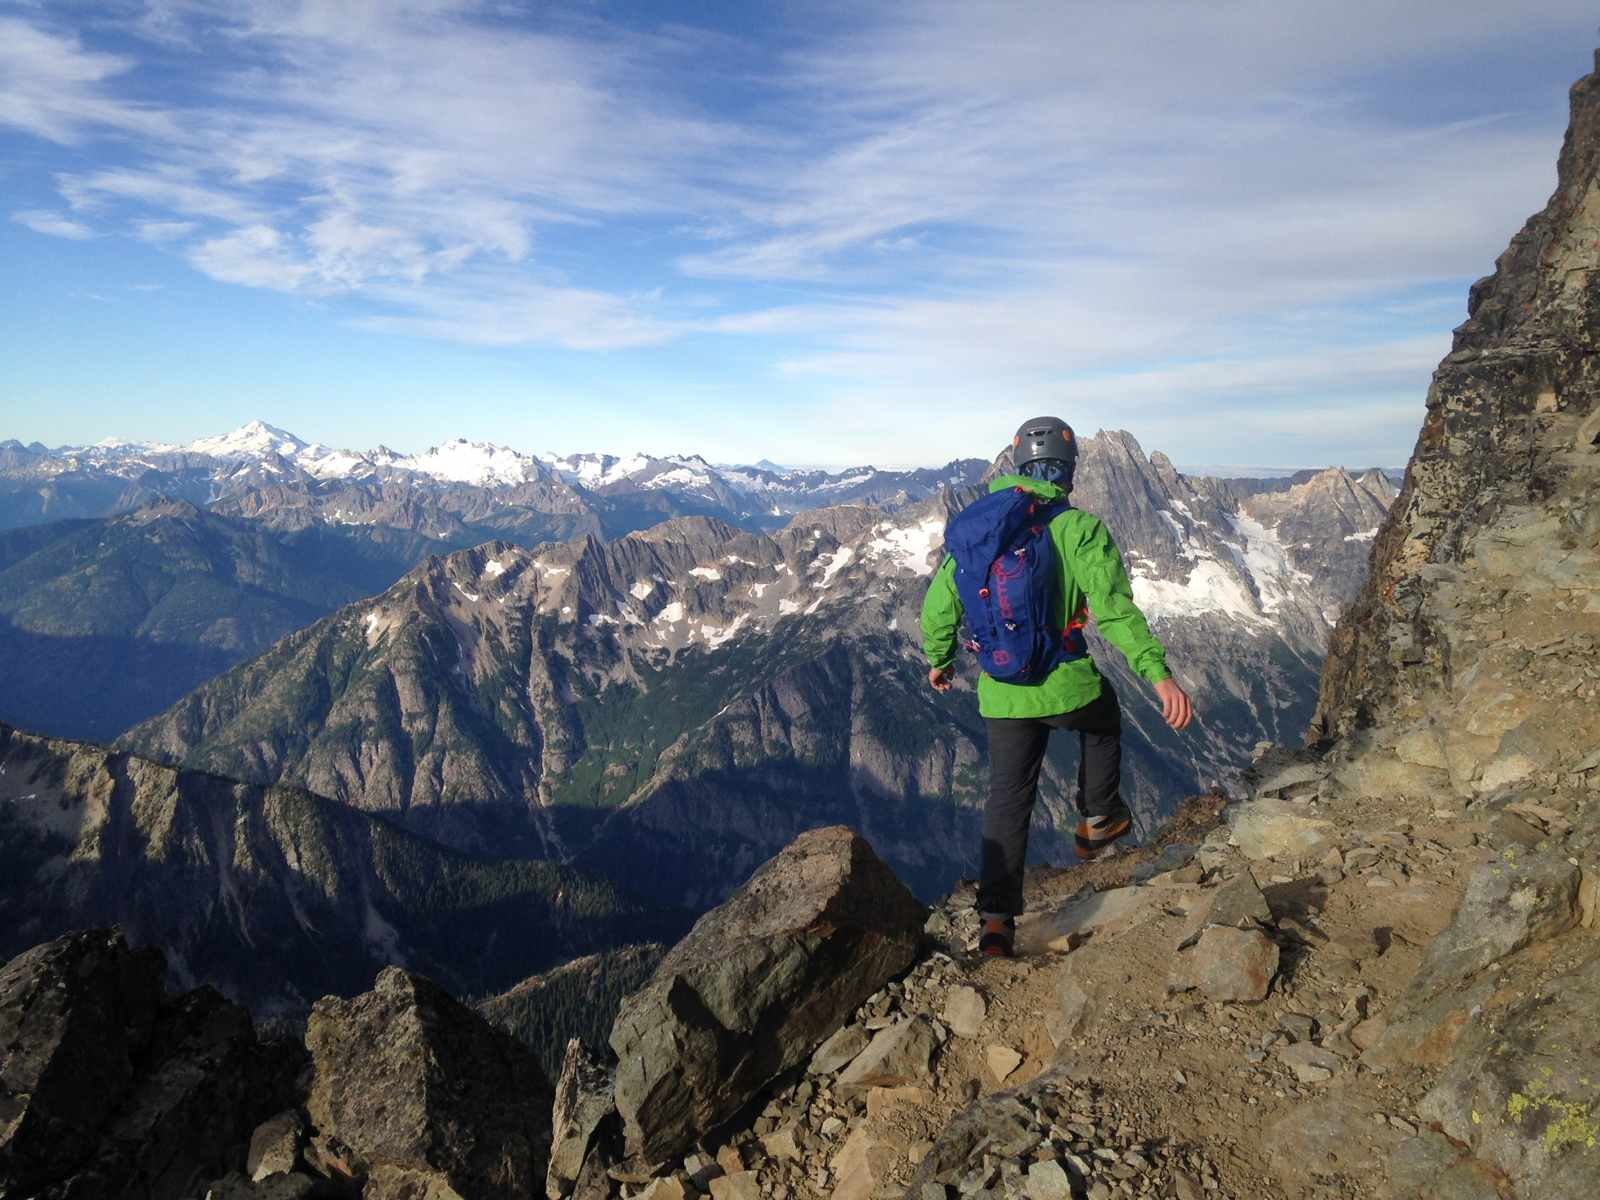 Coming down from the summit of Black Peak in the North Cascades.